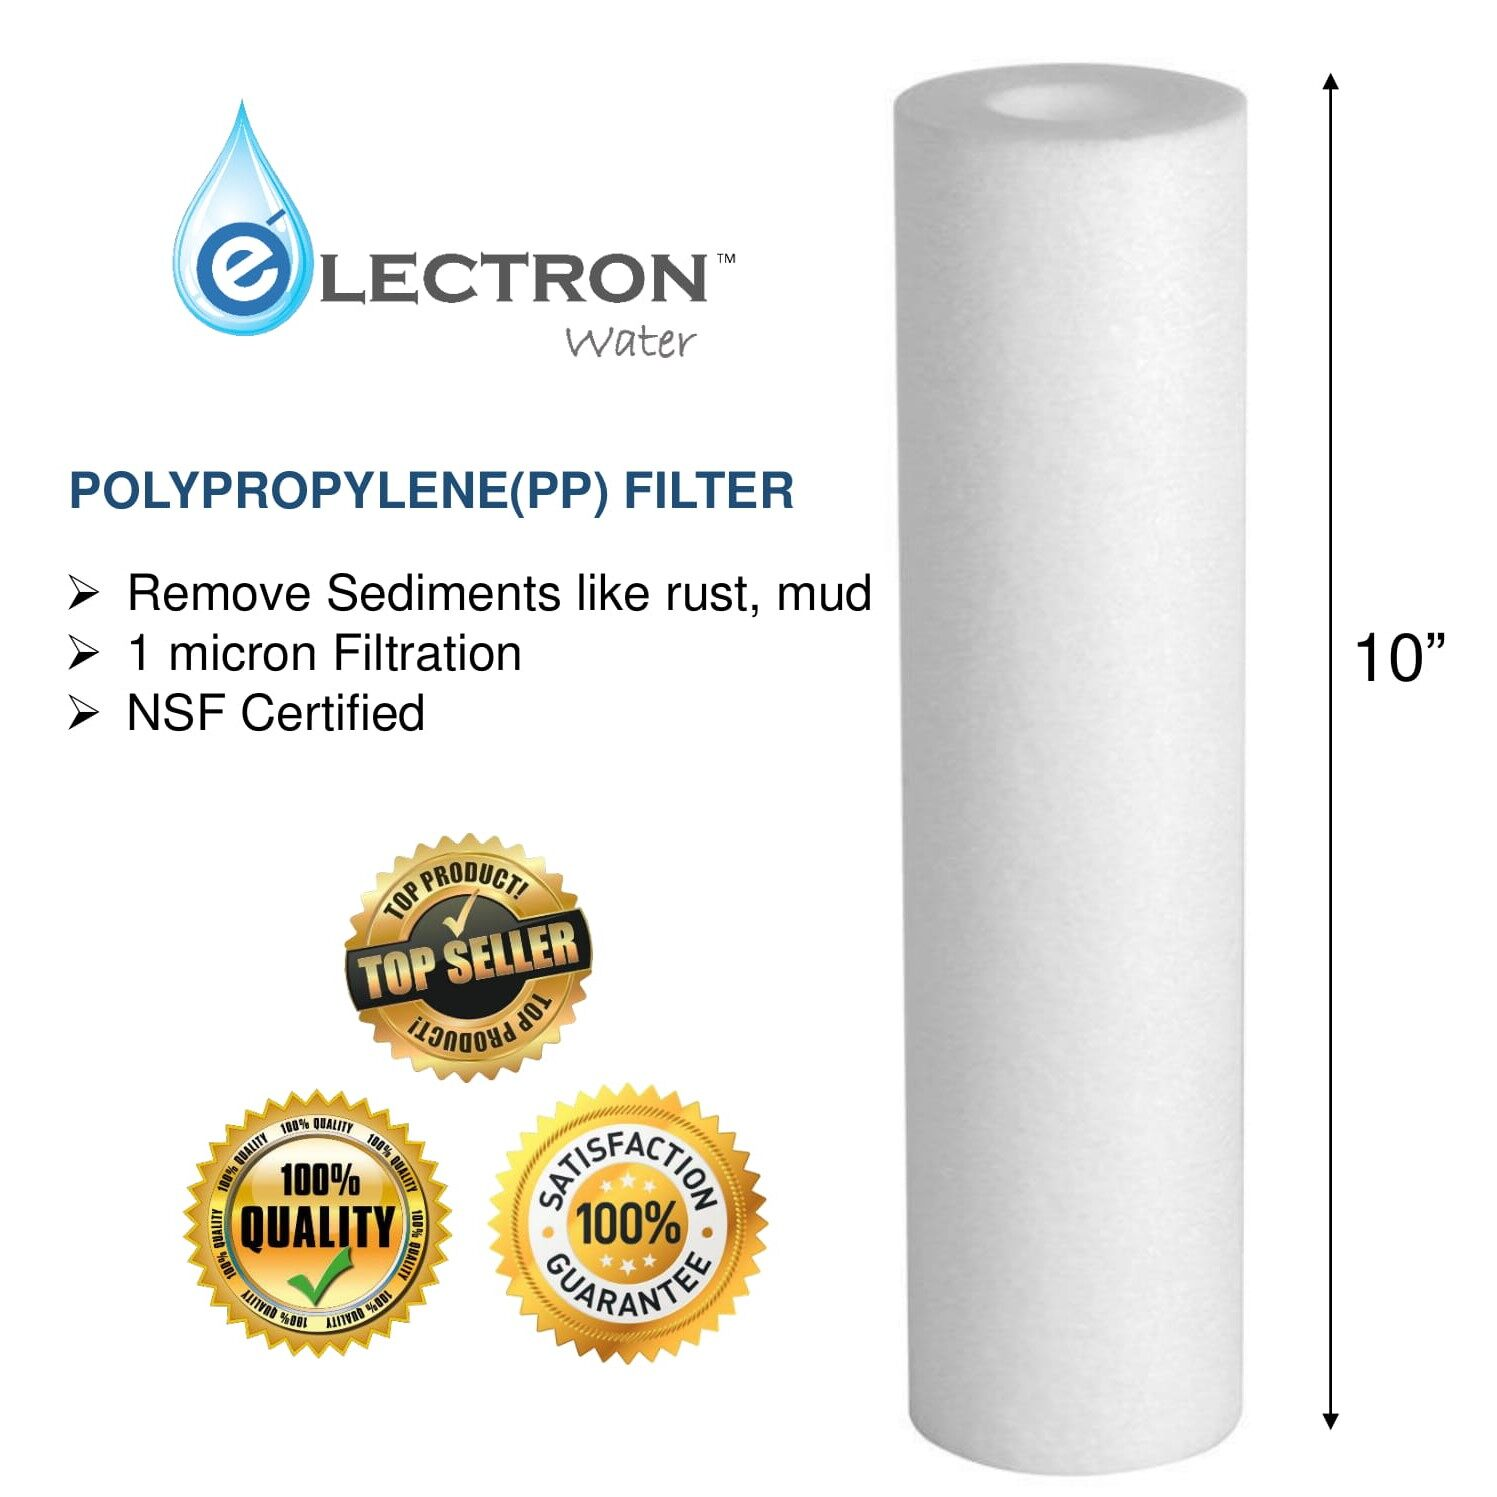 10 Inches High Quality Polypropylene(PP) Sediment Filter Cartridge (1 Micron)